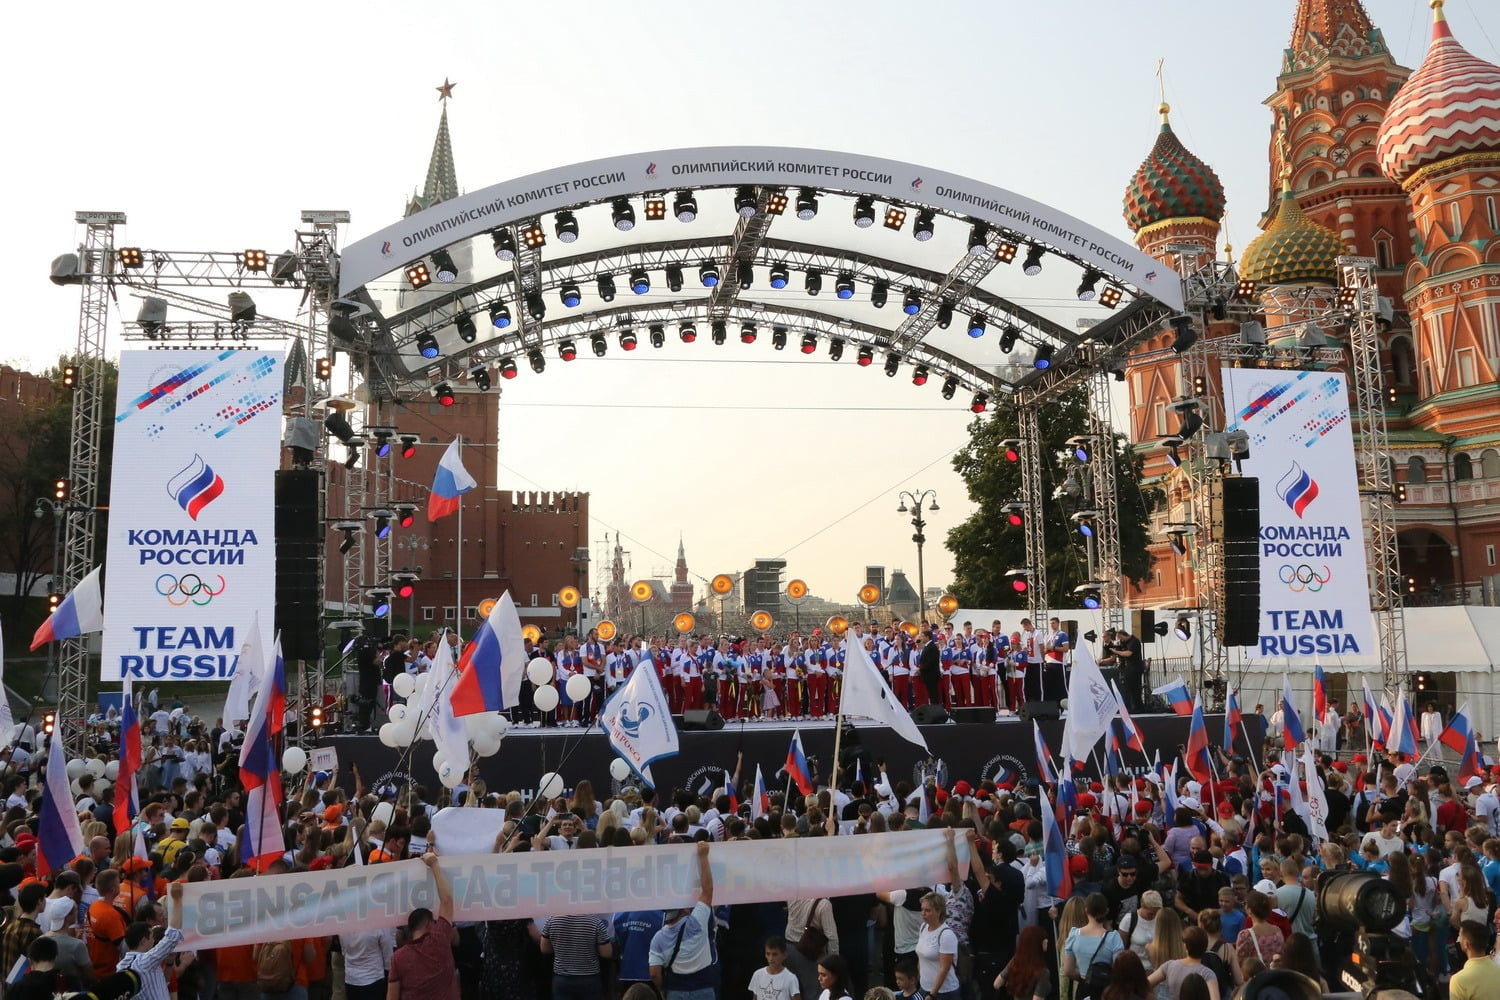 Returning athletes from the Tokyo 2020 Olympics were celebrated in Red Square ©Georgy Bryusov/Facebook